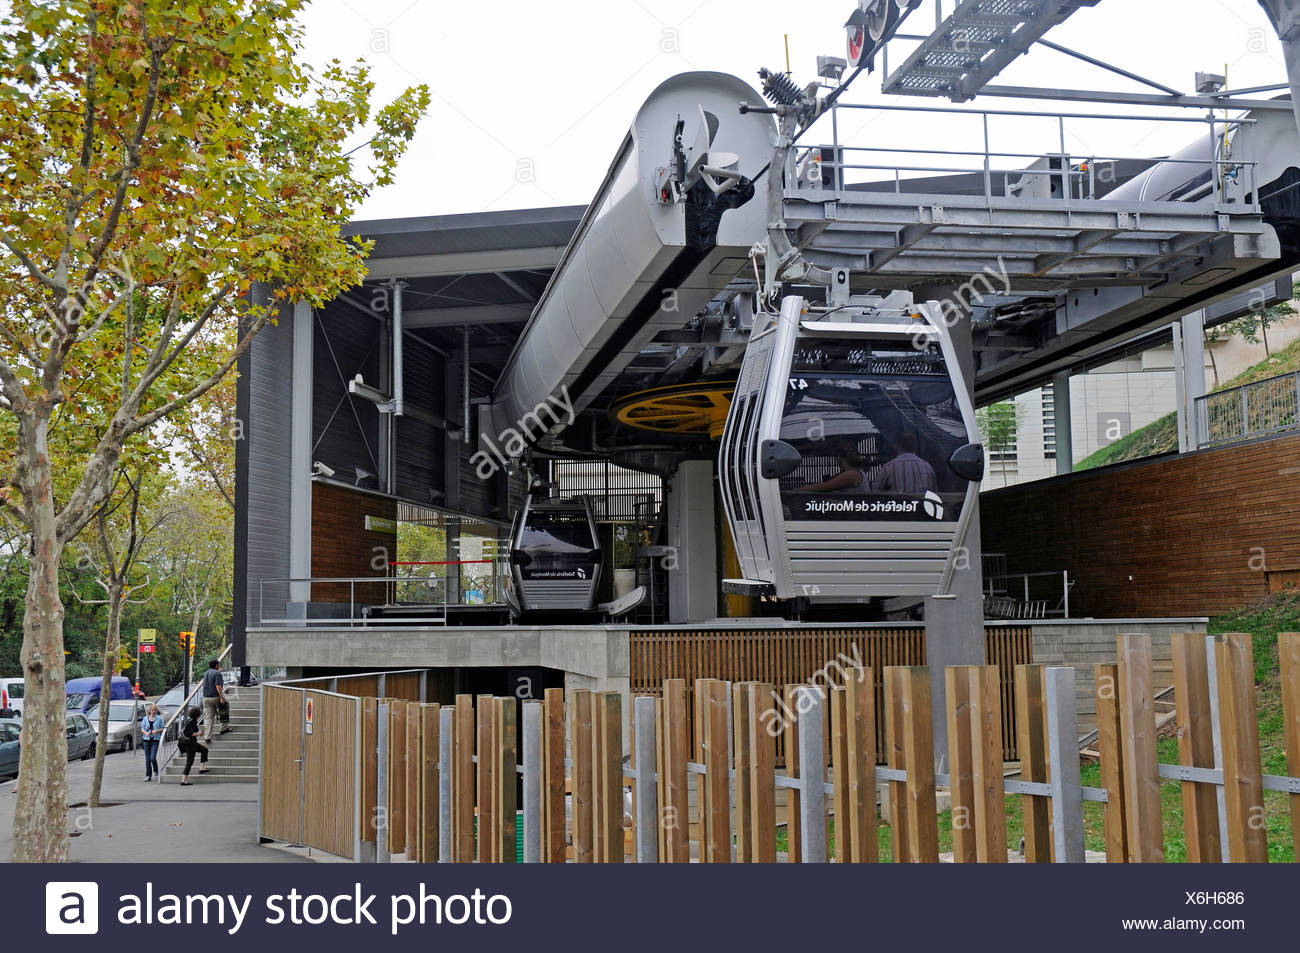 Teleferic, cable car station, Montjuic, Barcelona, Catalonia, Spain, Europe - Stock Image